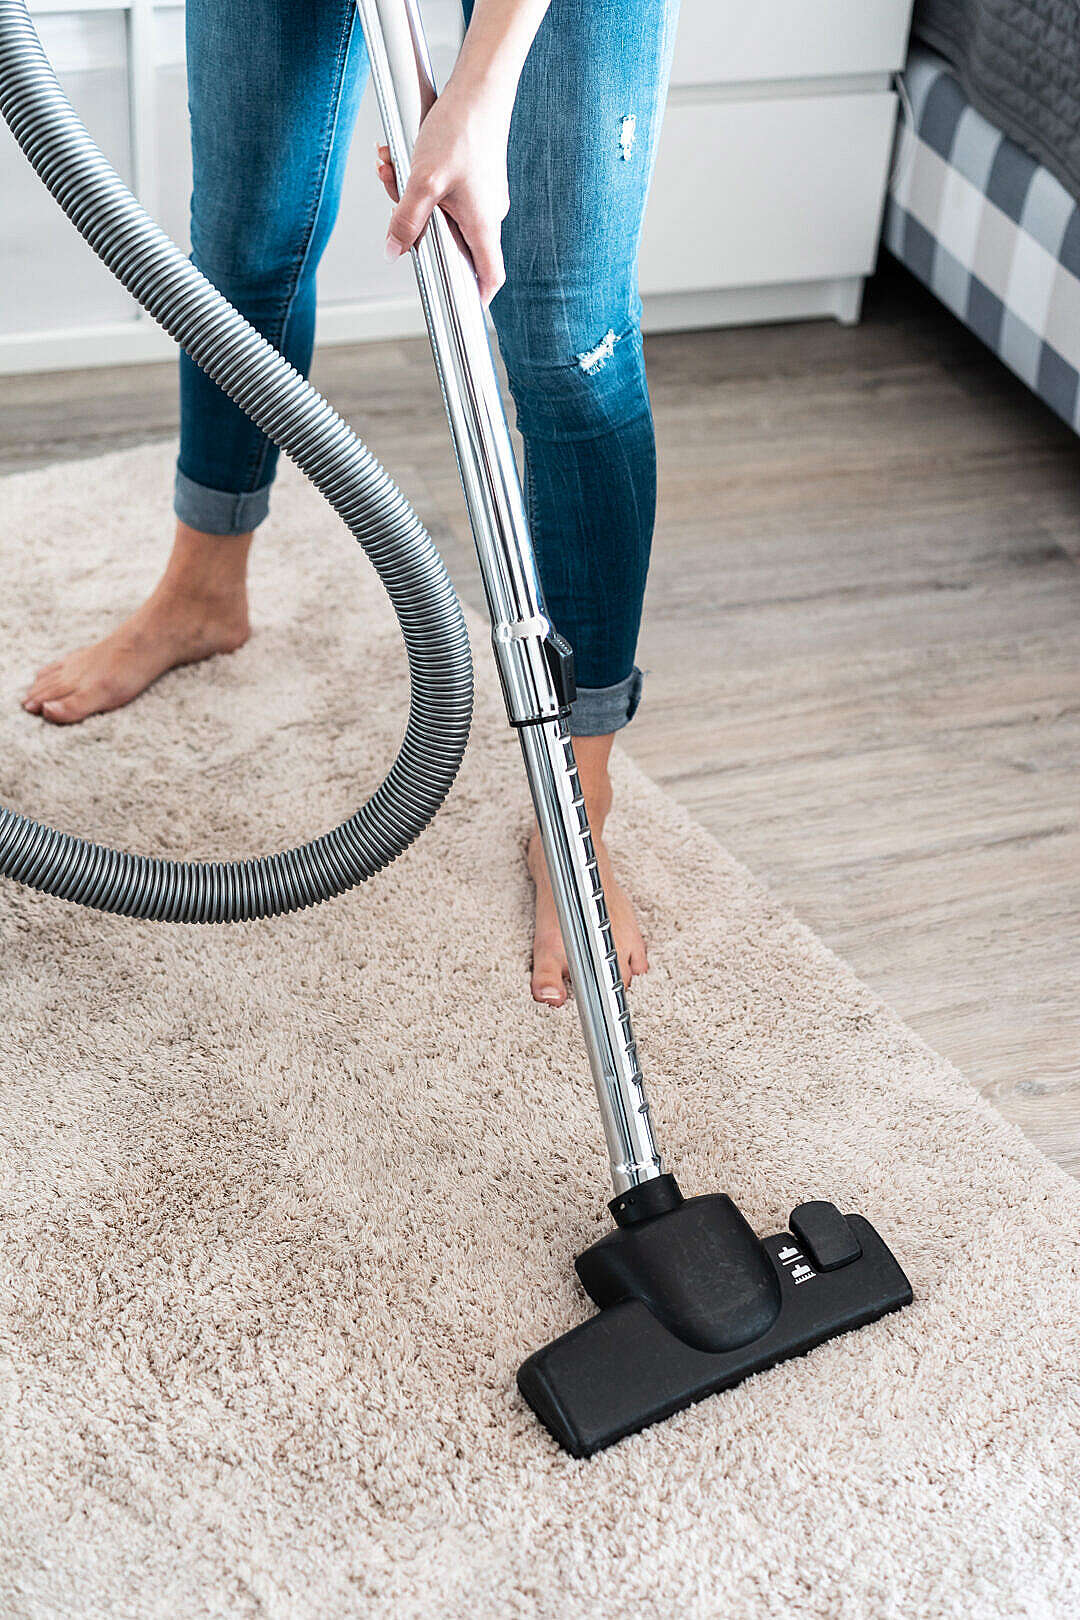 Download Woman Cleaning Vacuuming the Carpet at Home FREE Stock Photo